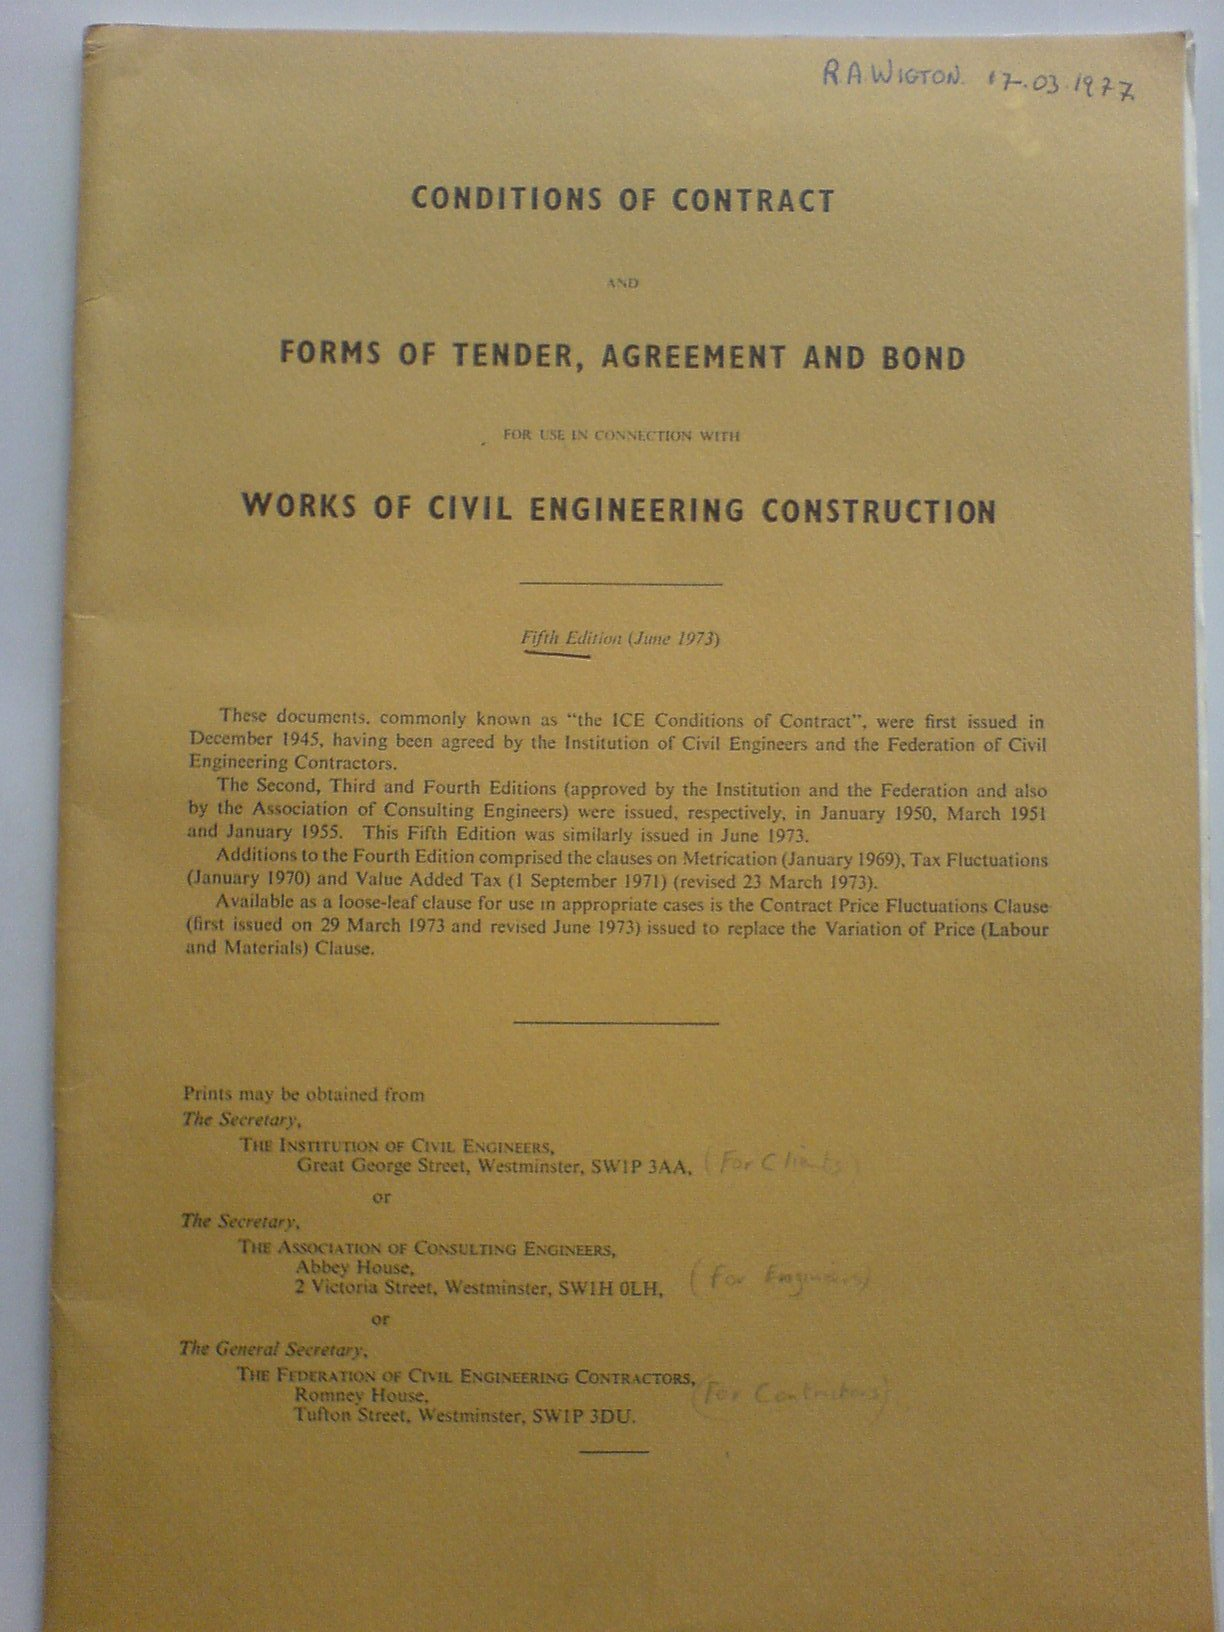 Conditions of Contract: Forms of Tender, Agreement and Bond